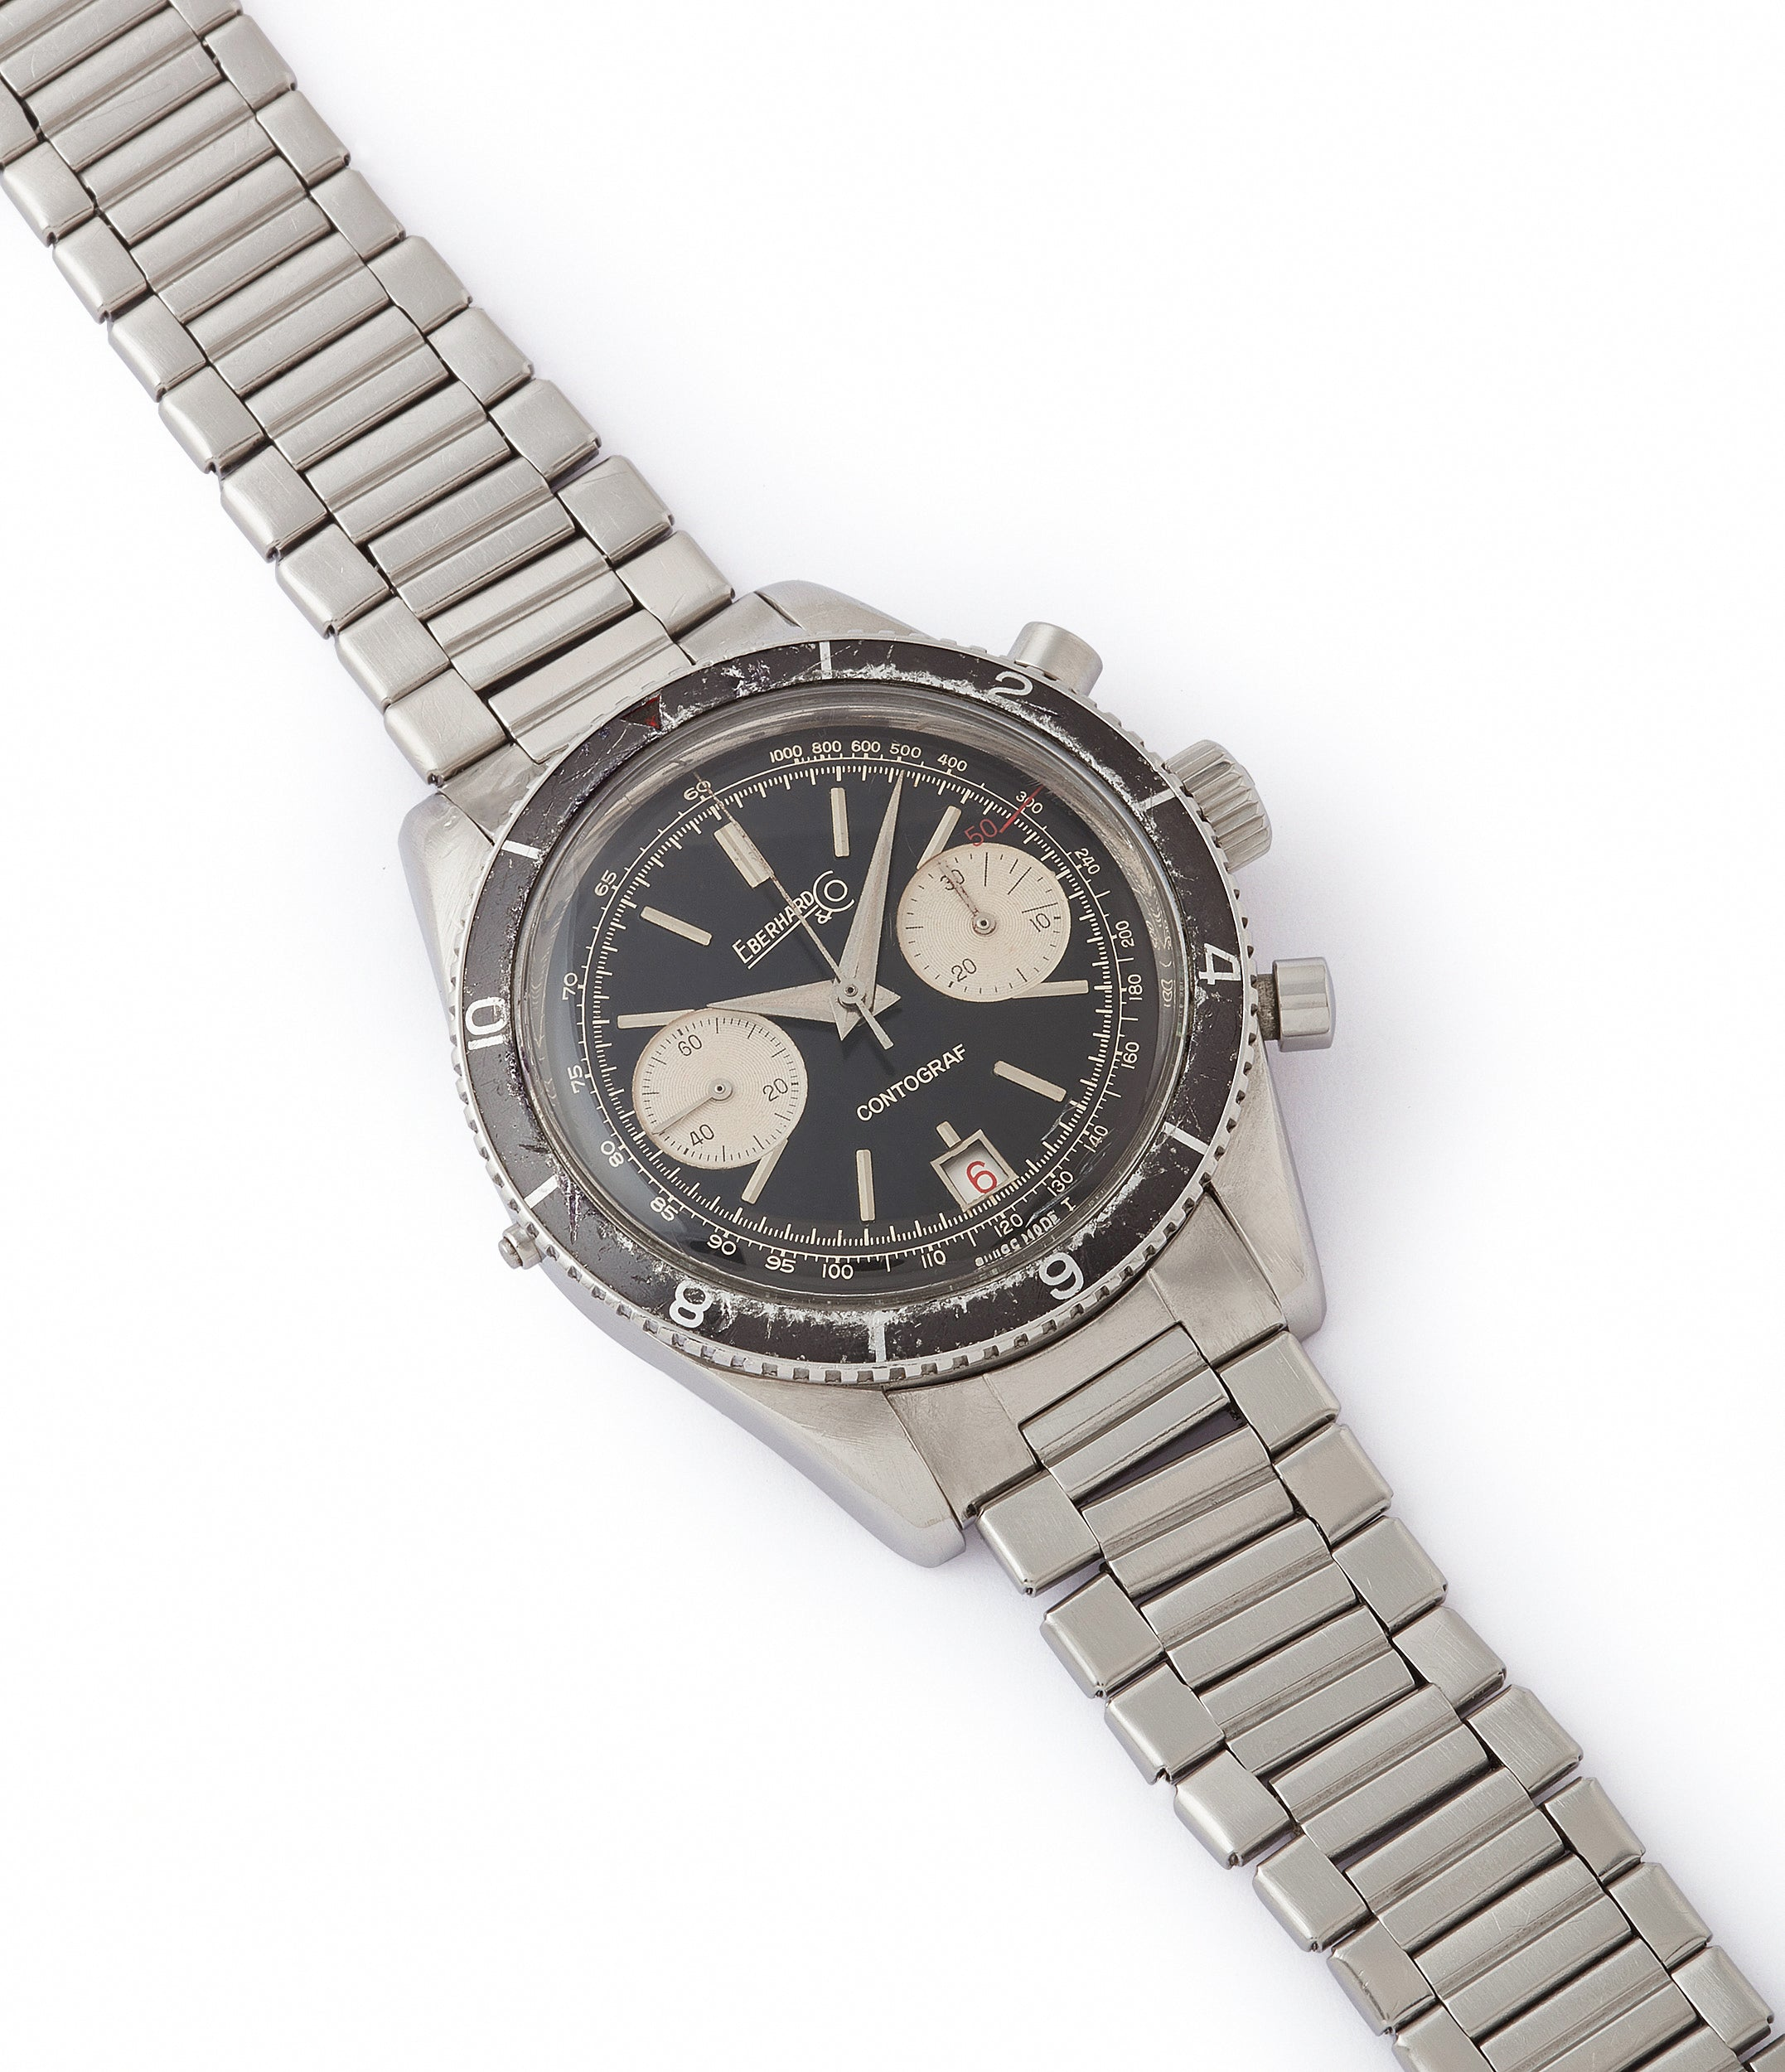 sell vintage Eberhard Contograf chronograph steel sports watch for sale online at A Collected Man London UK specialist of rare watches